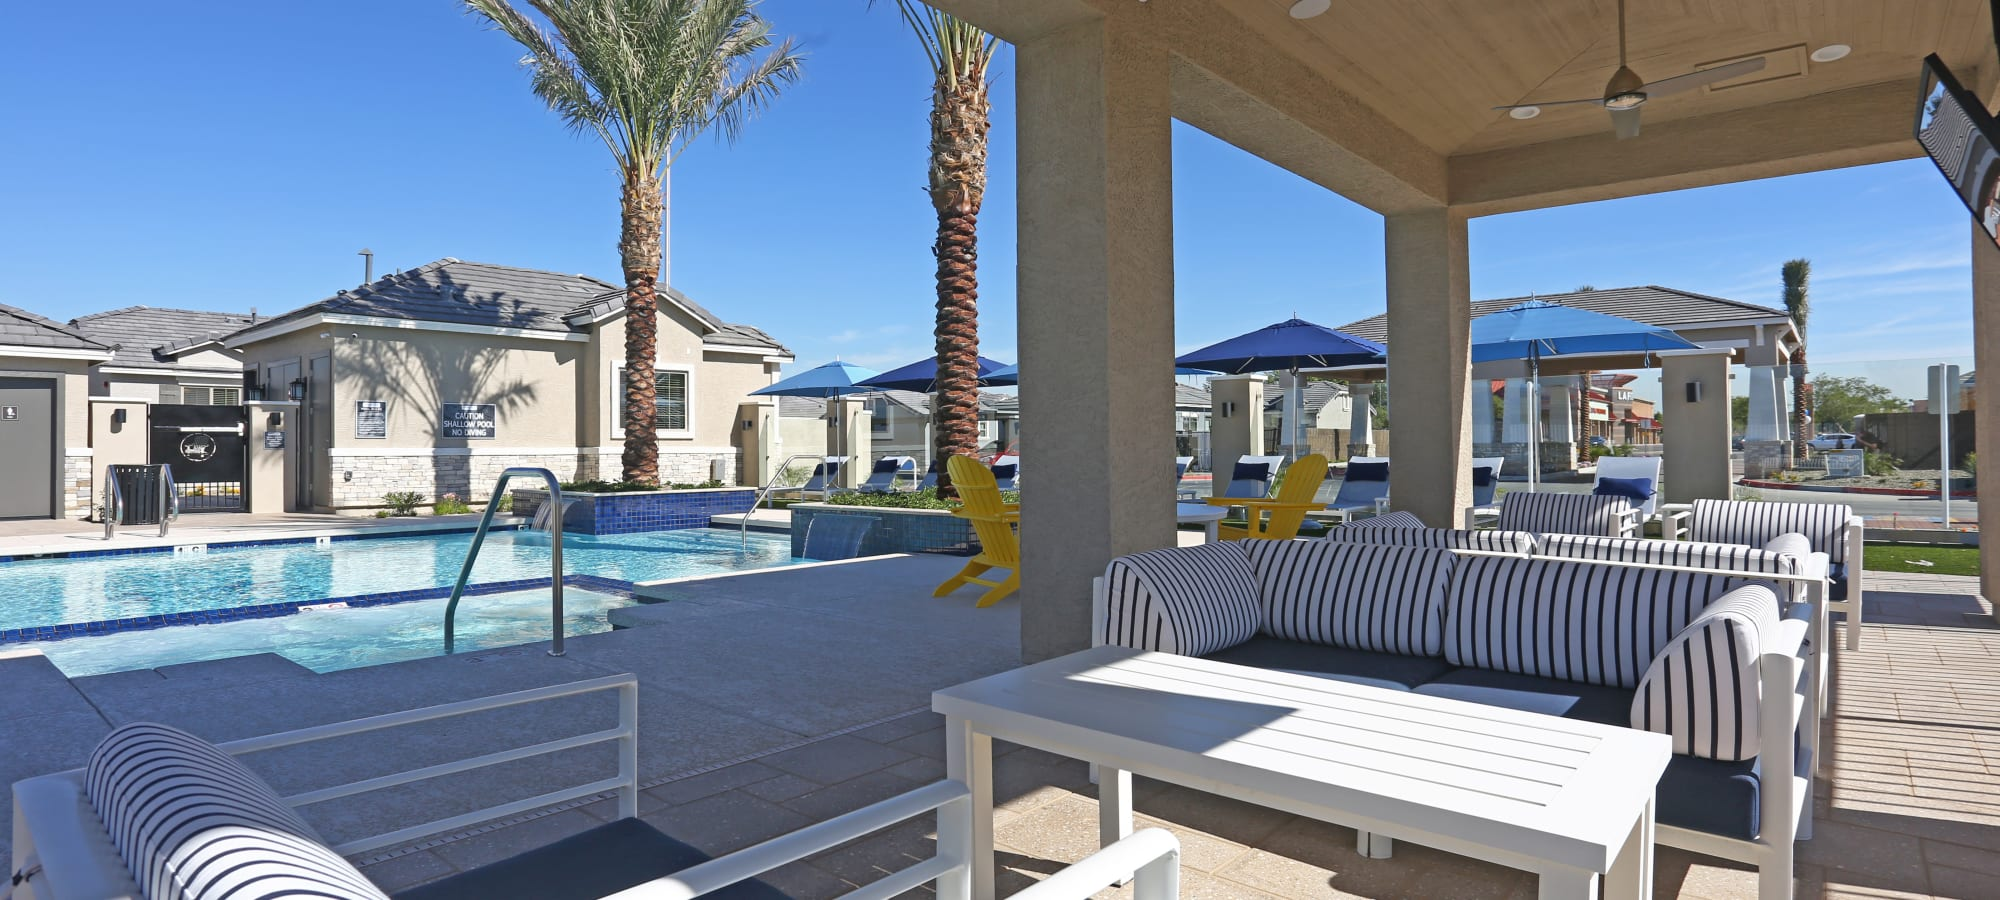 Lounge seating near the pool at Christopher Todd Communities On Mountain View in Surprise, Arizona